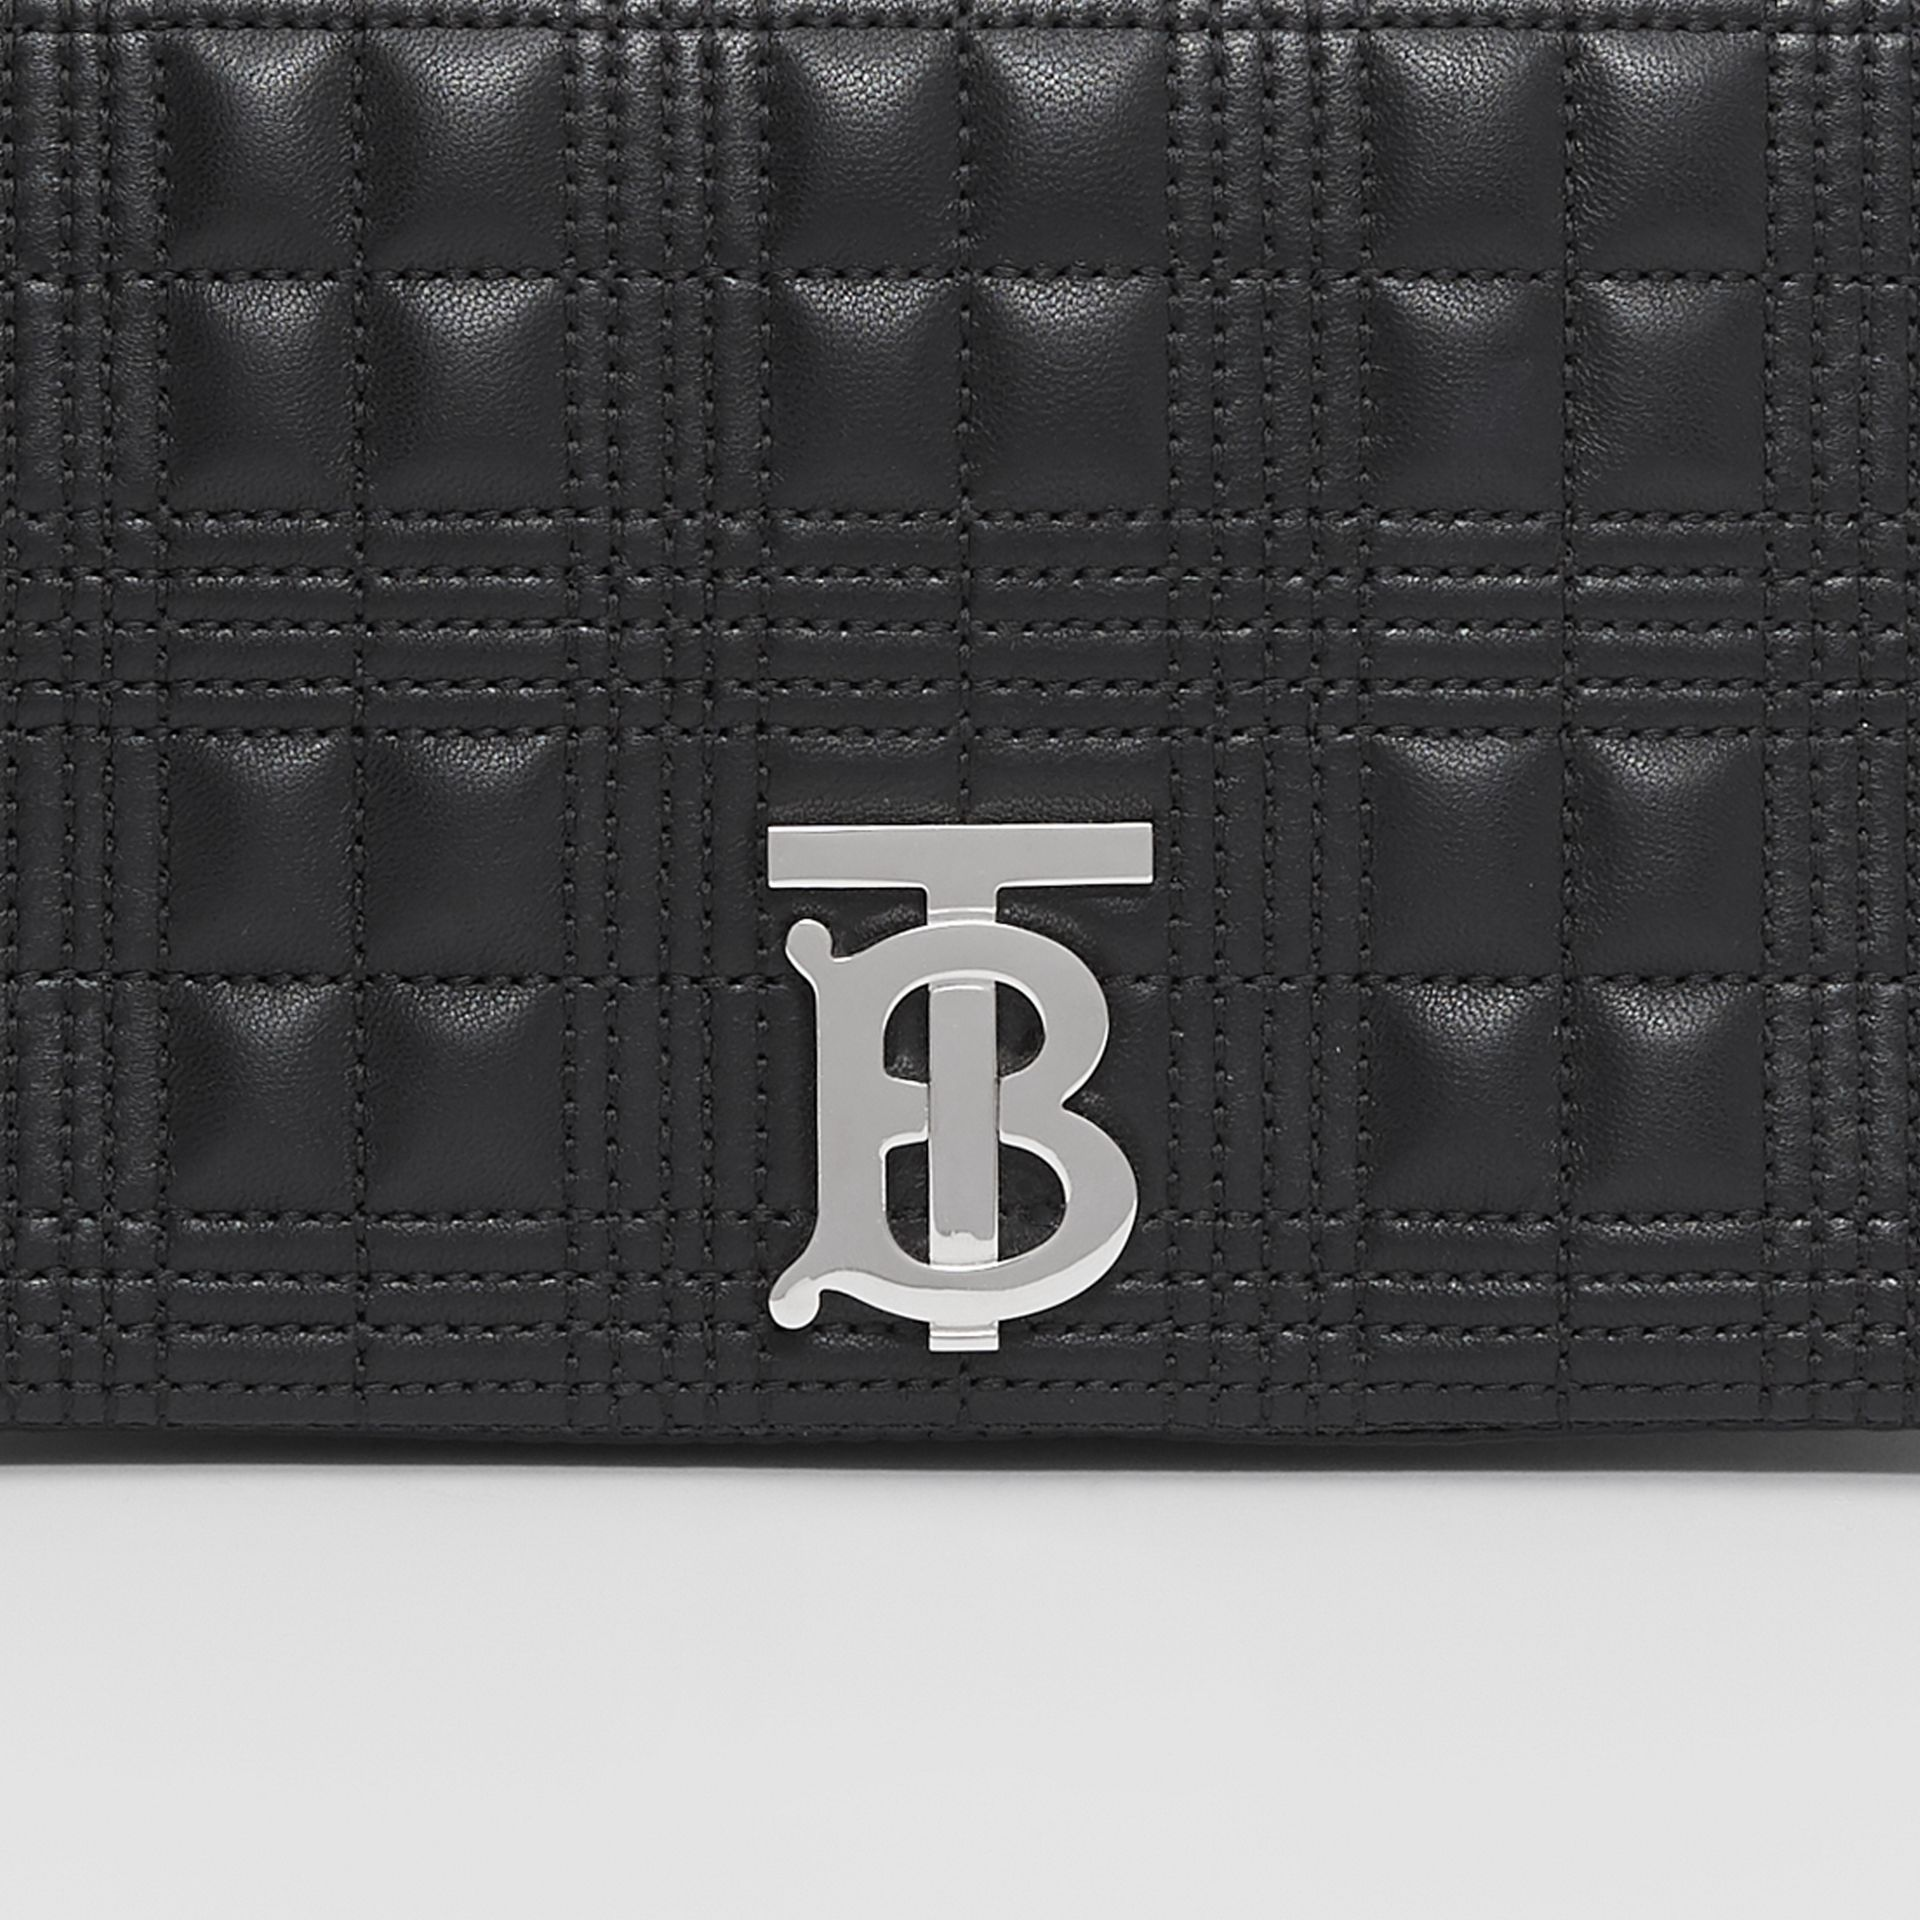 Small Crystal Detail Quilted Lambskin Lola Bag in Black - Women | Burberry - gallery image 1